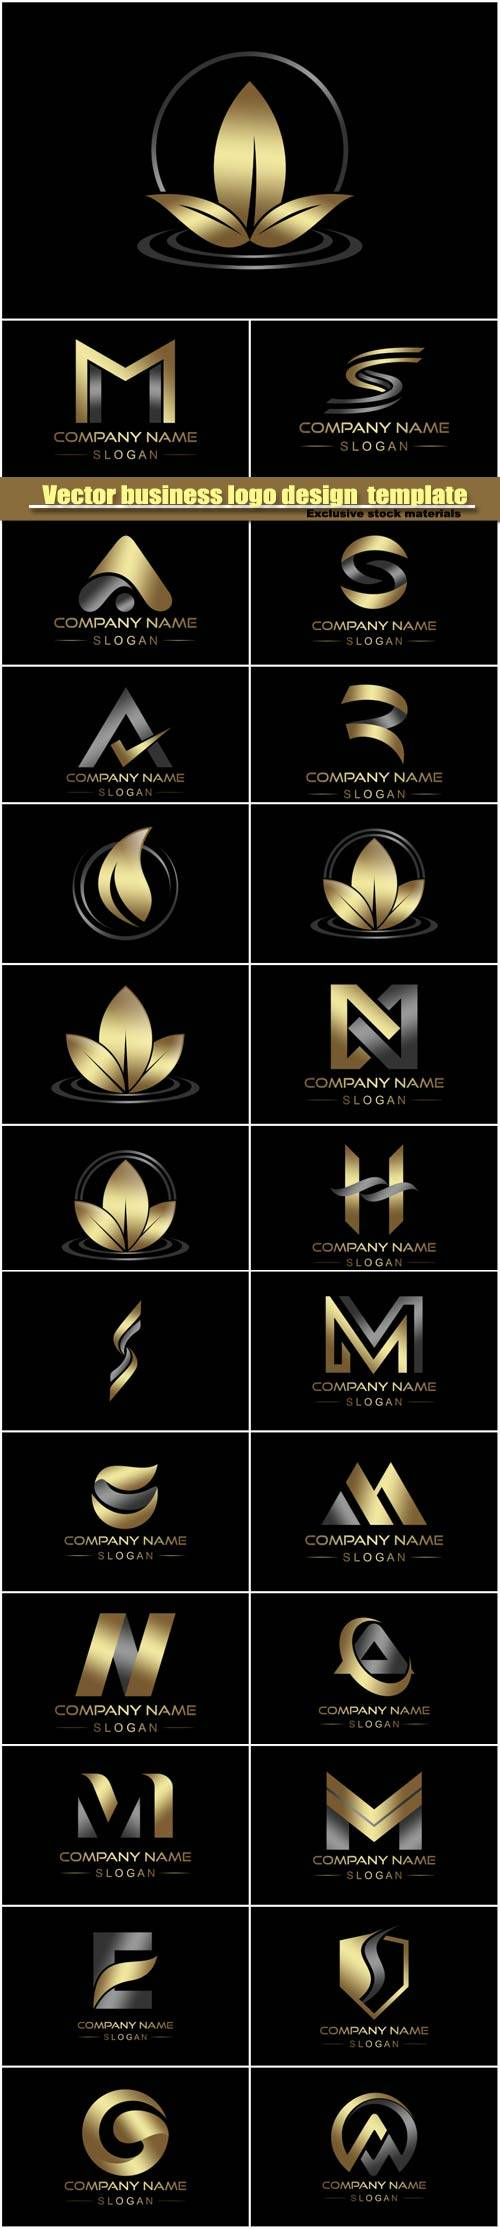 Vector business logo design  template on a black background